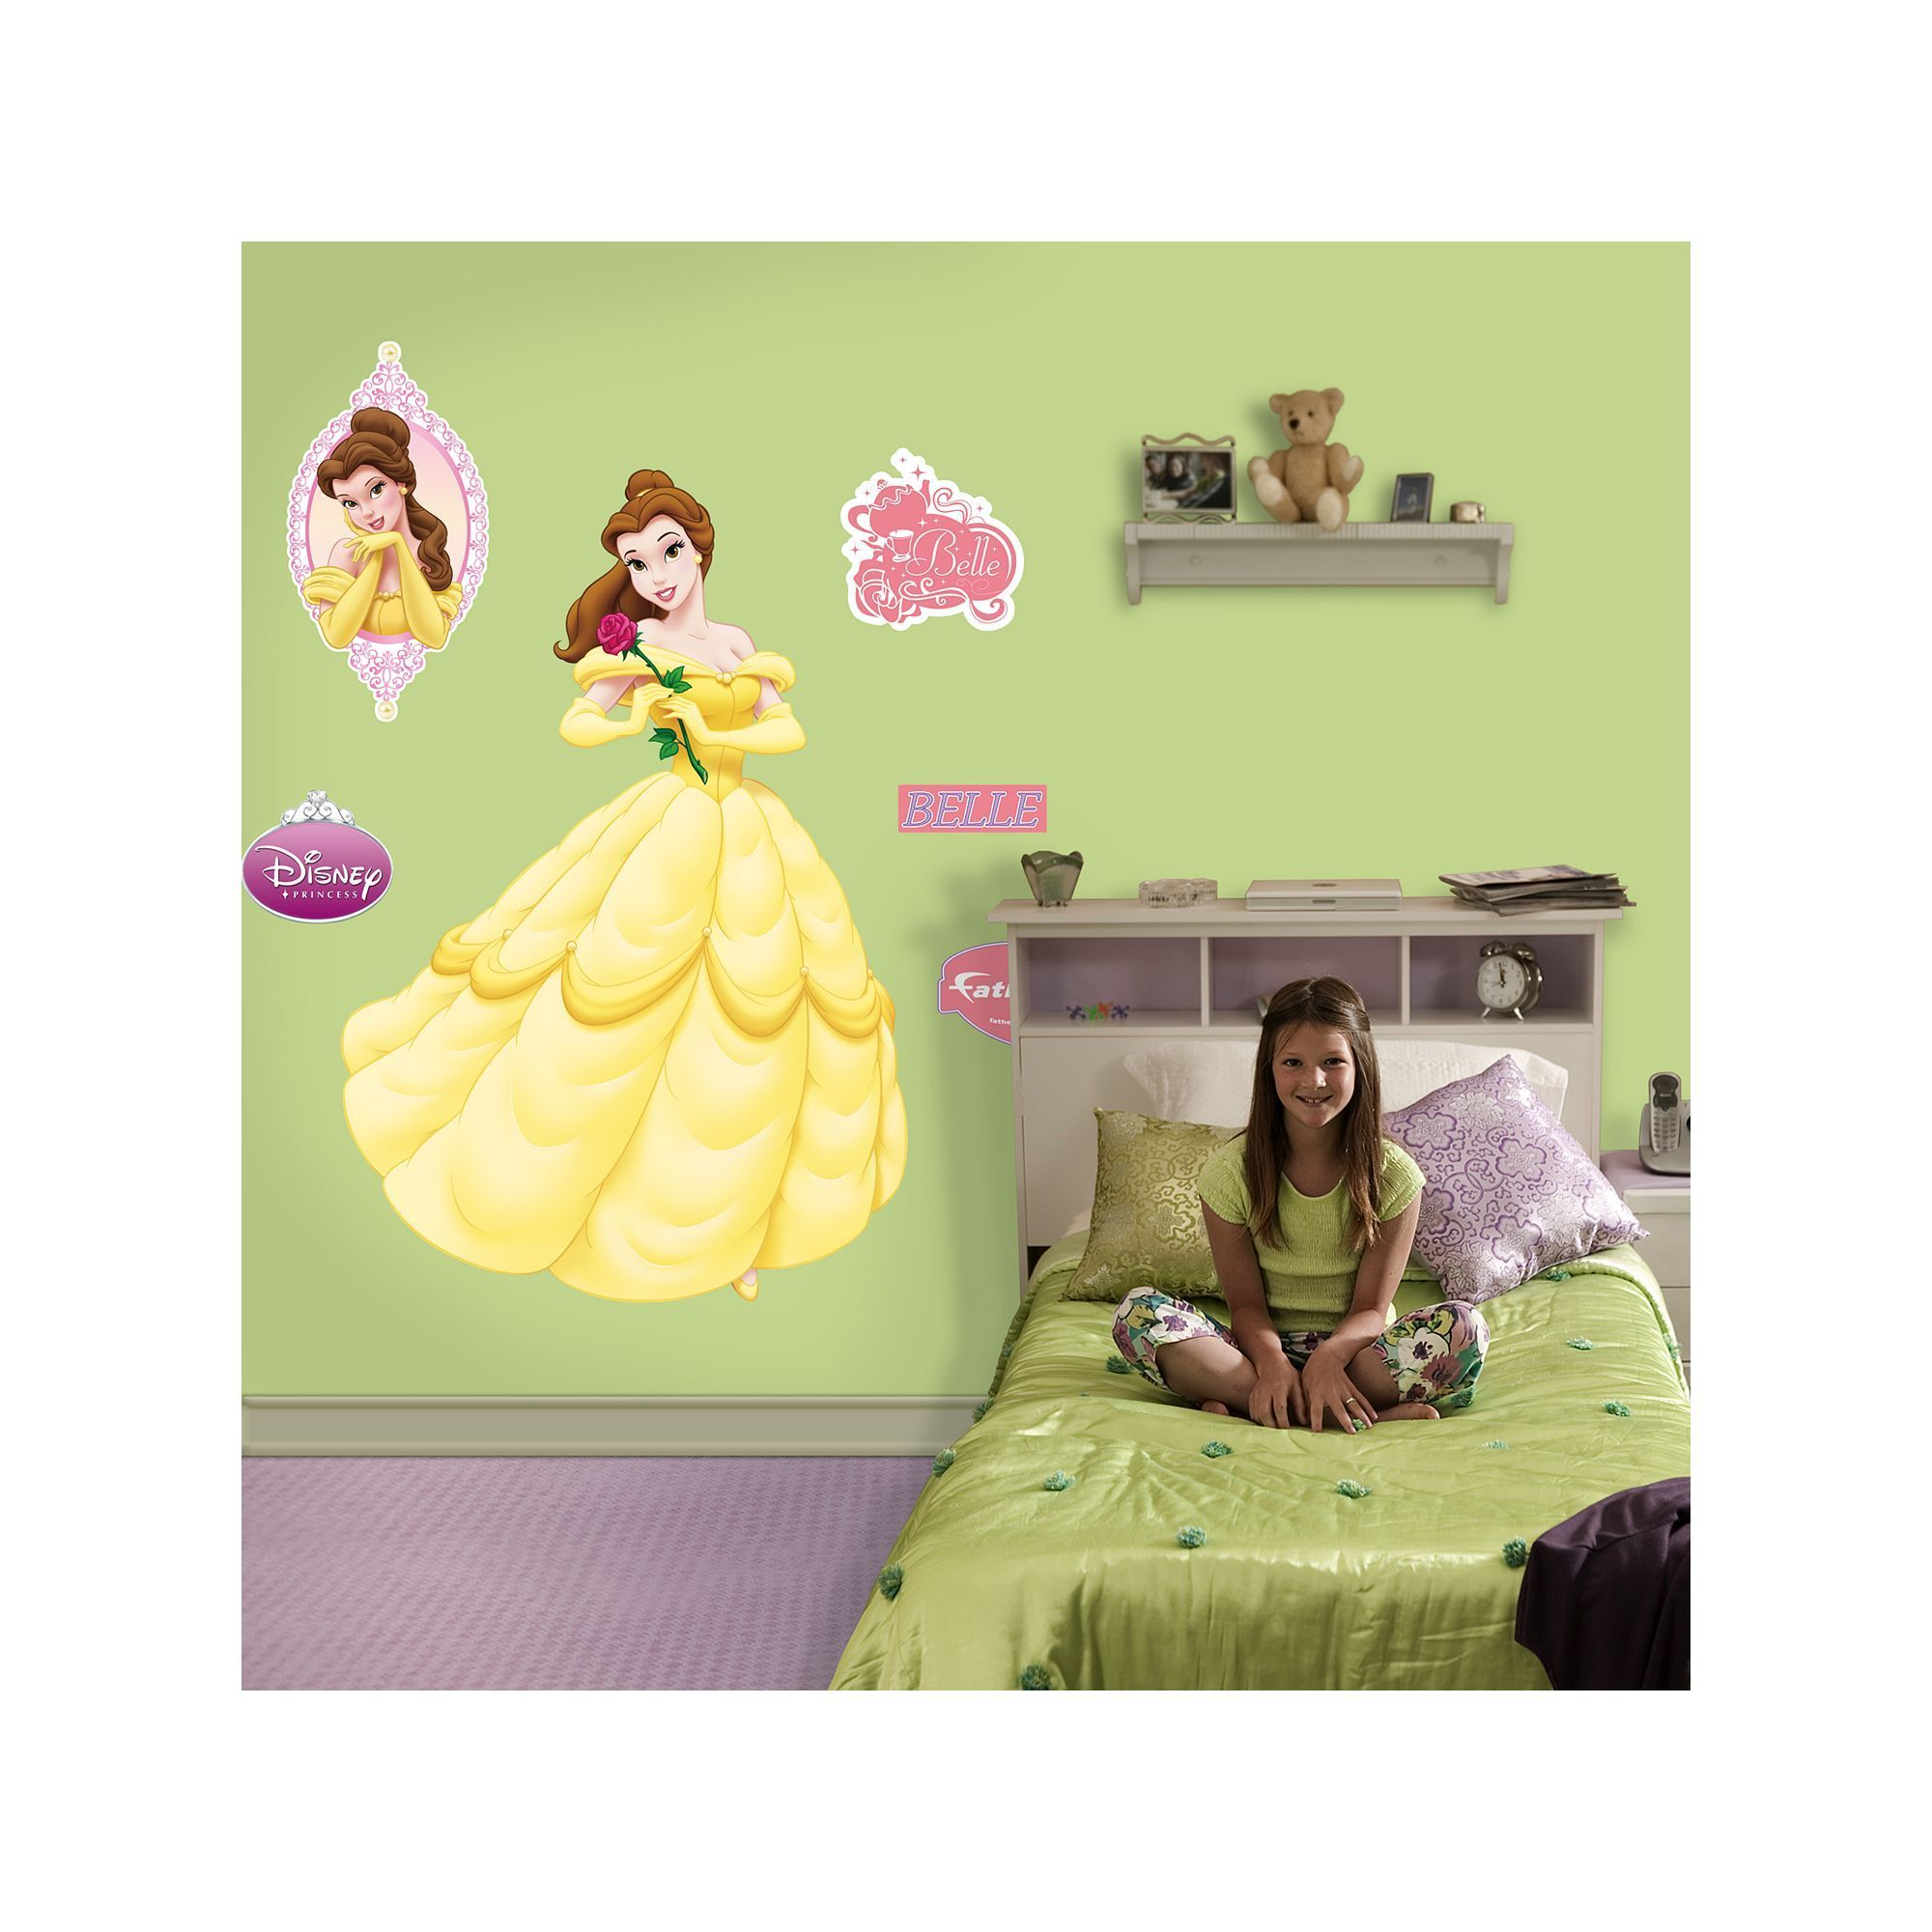 Luxury Fathead Princess Wall Decor Images - The Wall Art Decorations ...